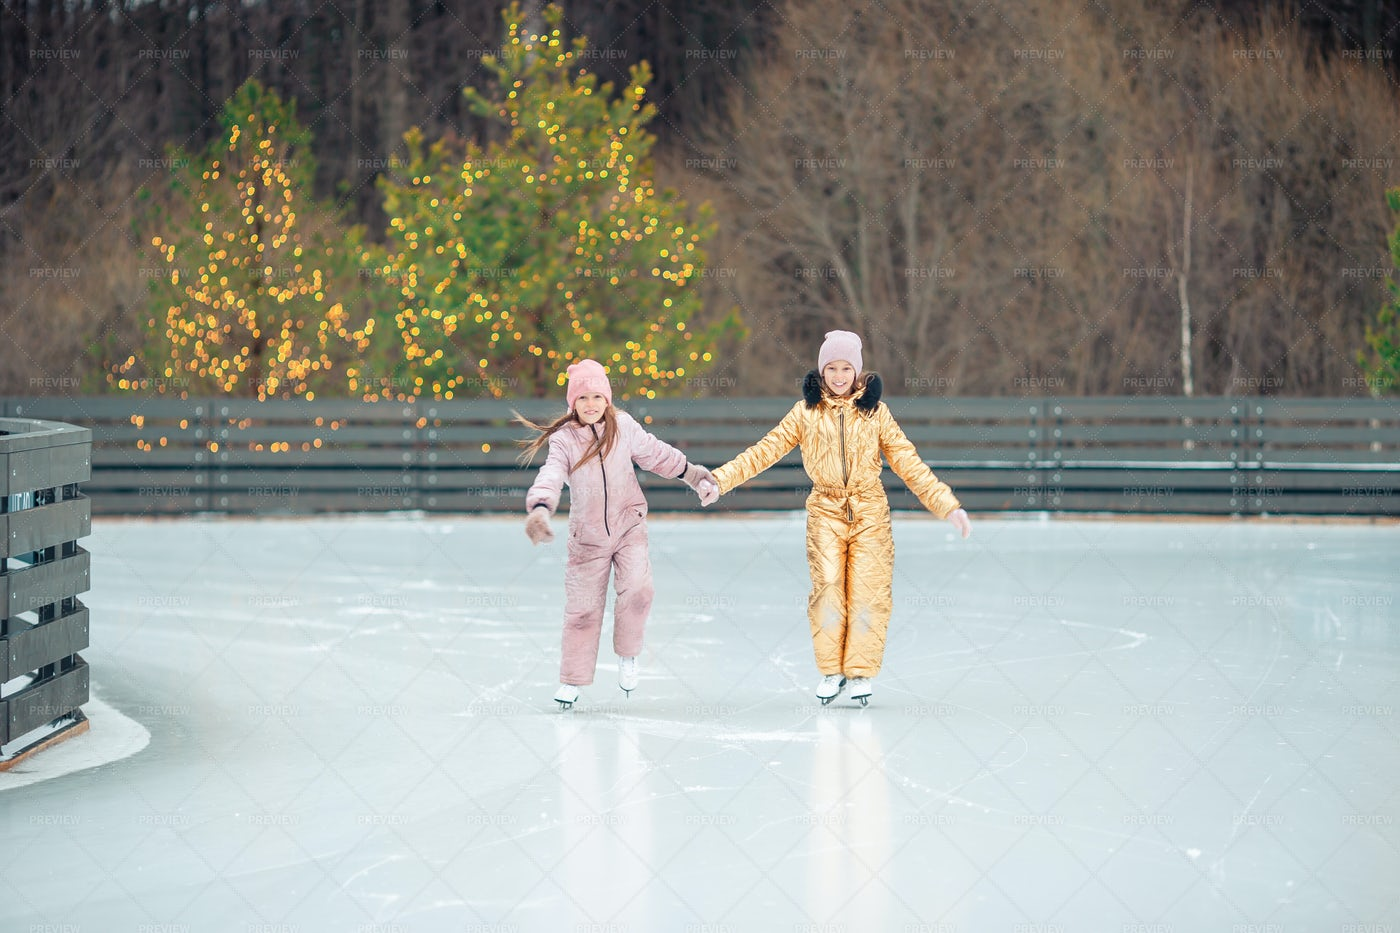 Sisters Ice Skating Together: Stock Photos